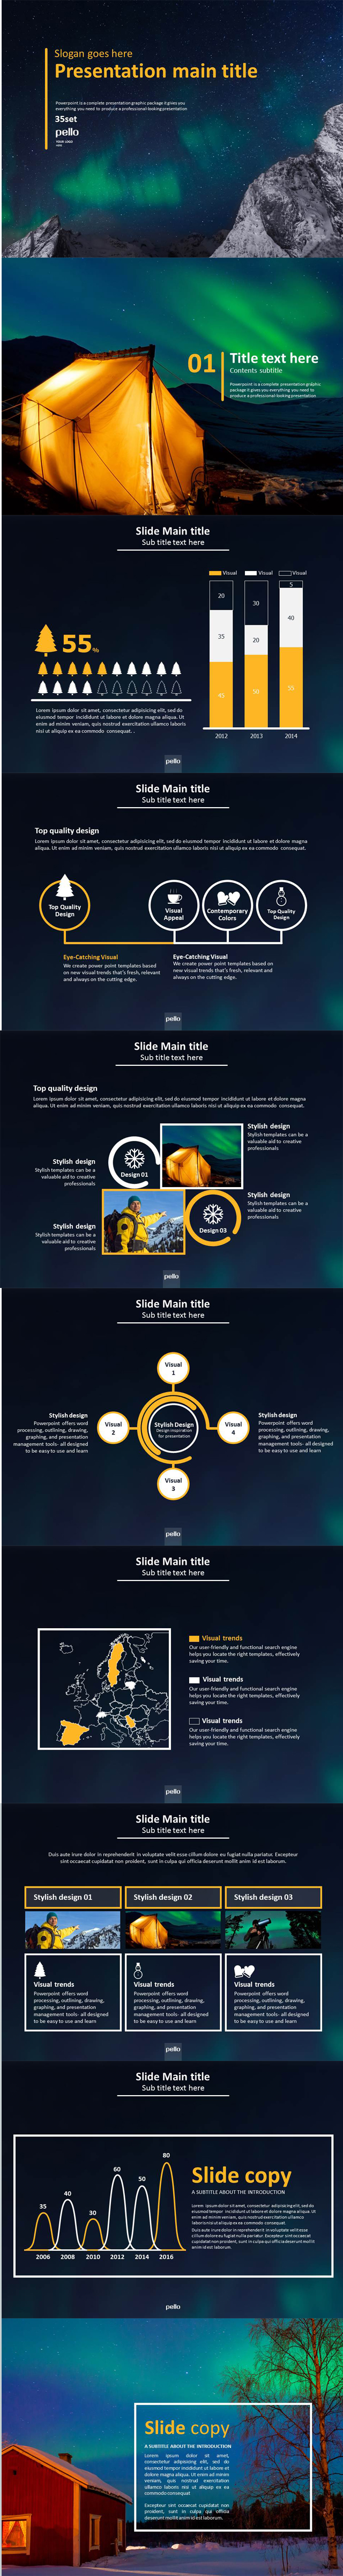 powerpoint design templates background PPT template free www.pelllotemplat...